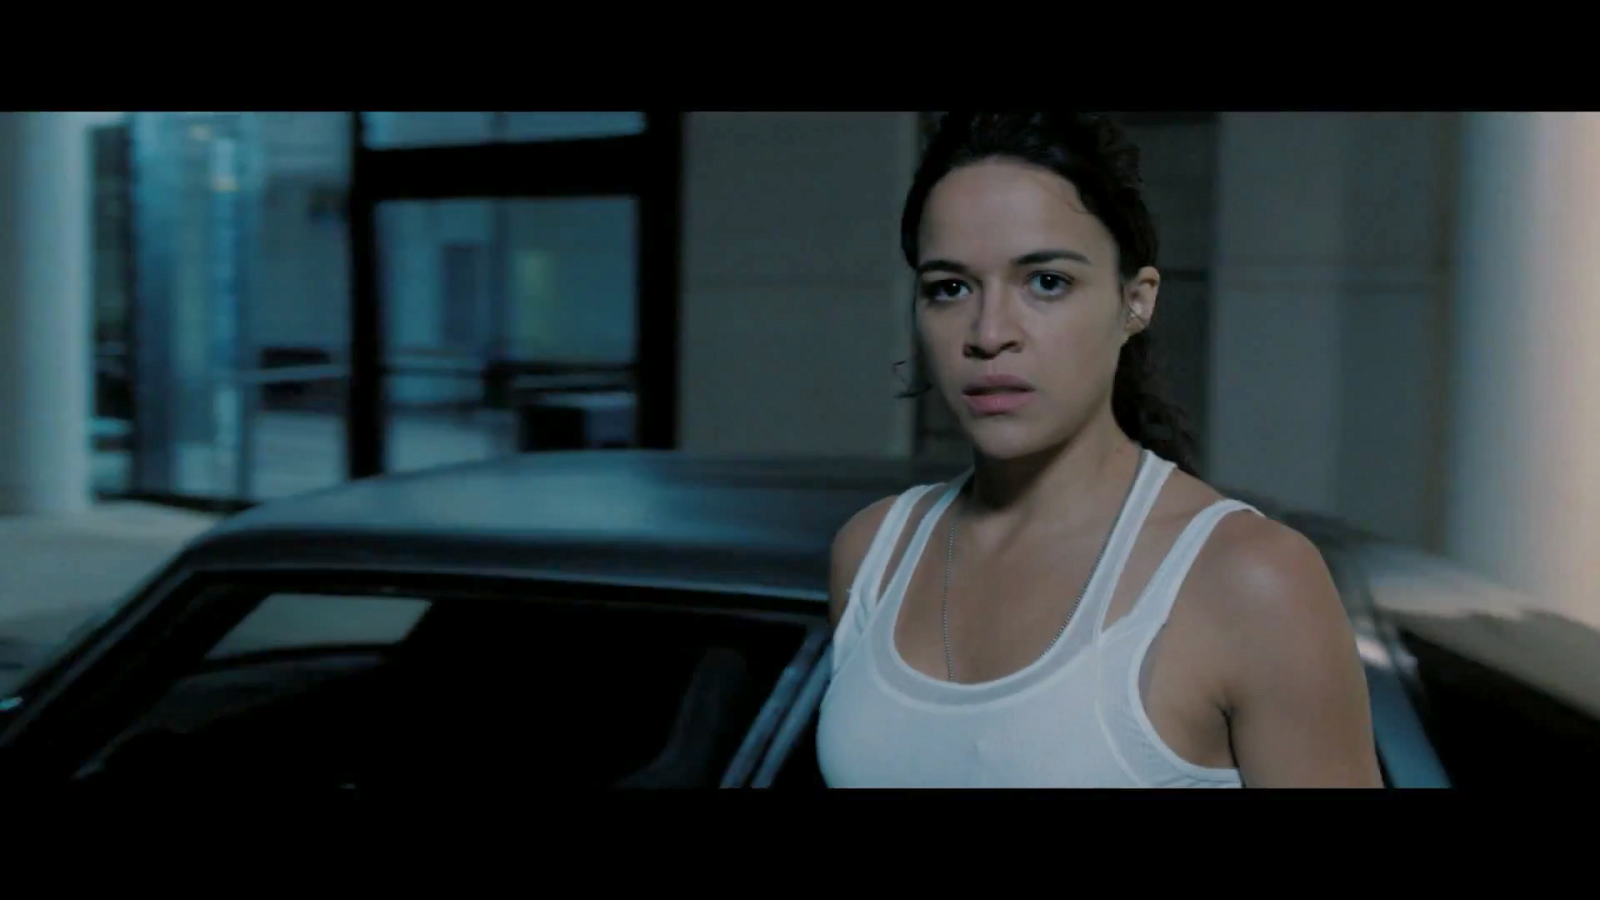 Letty Car Fast And Furious Puishwumin.blogspot.com: Fast & Furious 6 Movie On Last Sunday